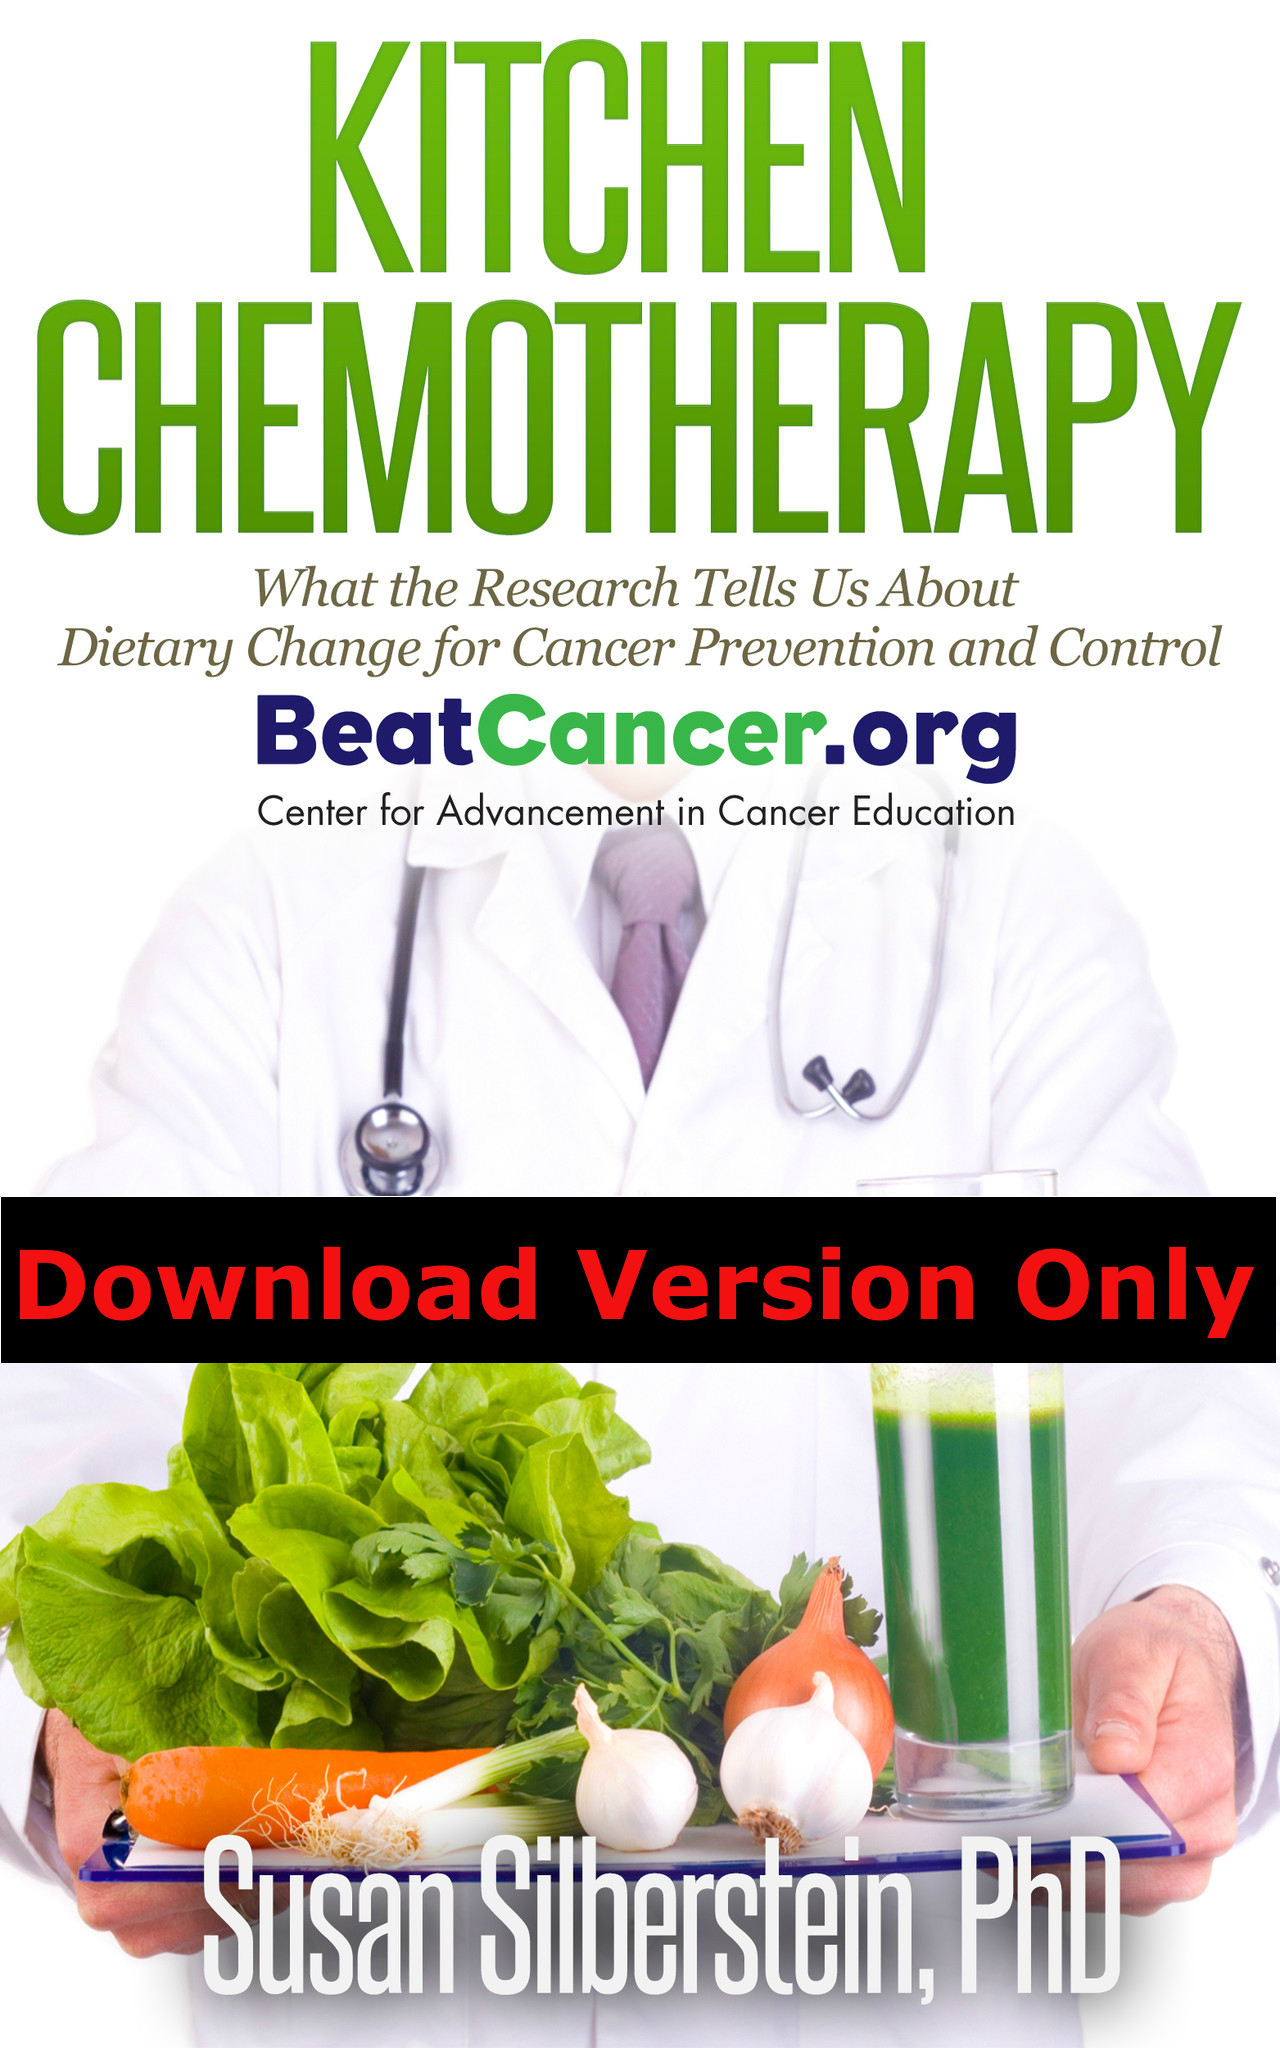 Kitchen Chemotherapy_Download.jpg